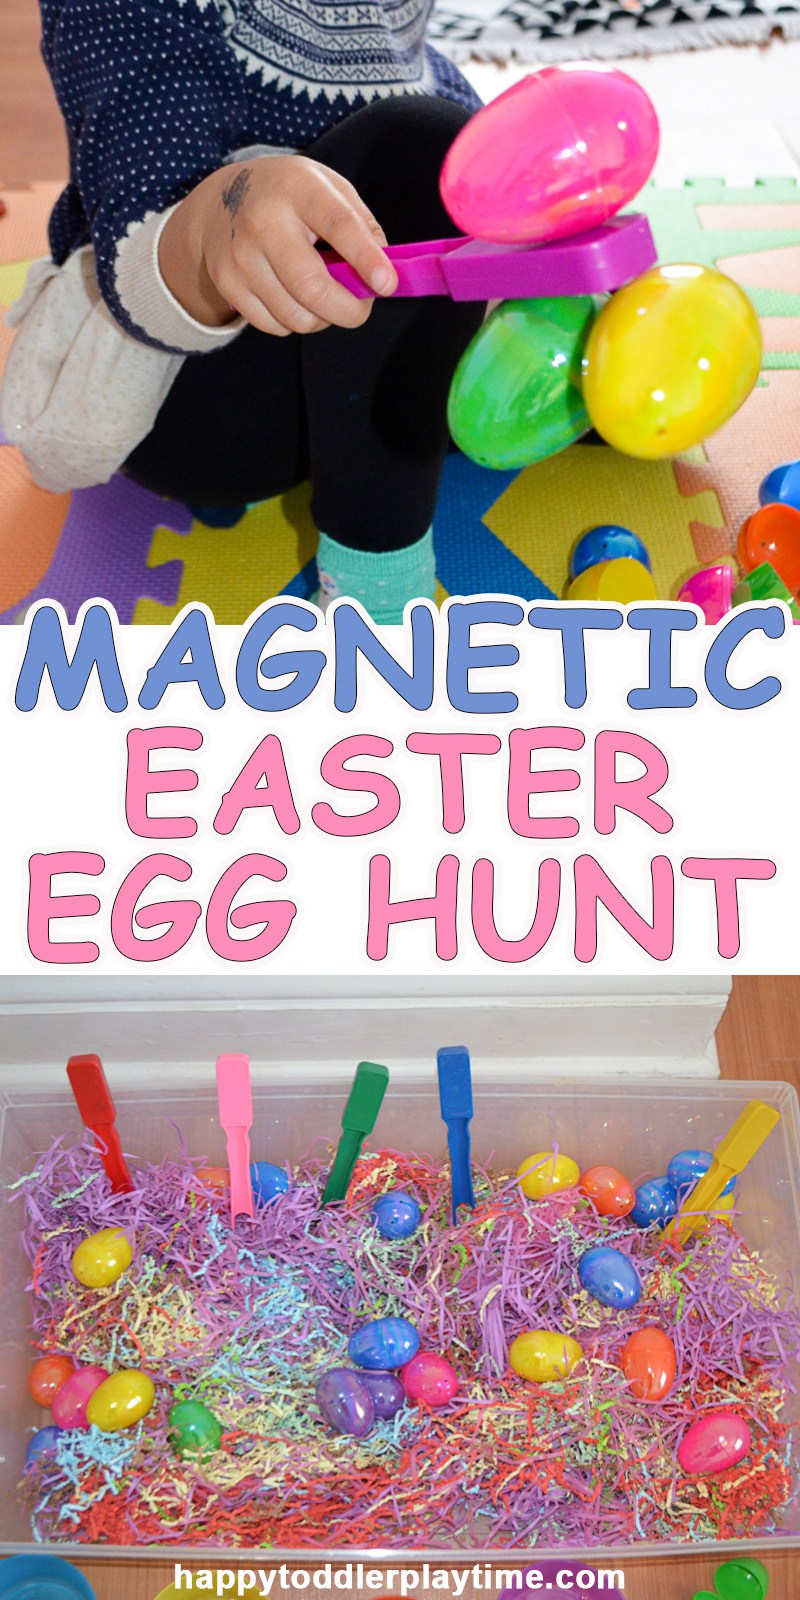 Creative Easter Egg Hunt Ideas That Will Keep Kids Hopping